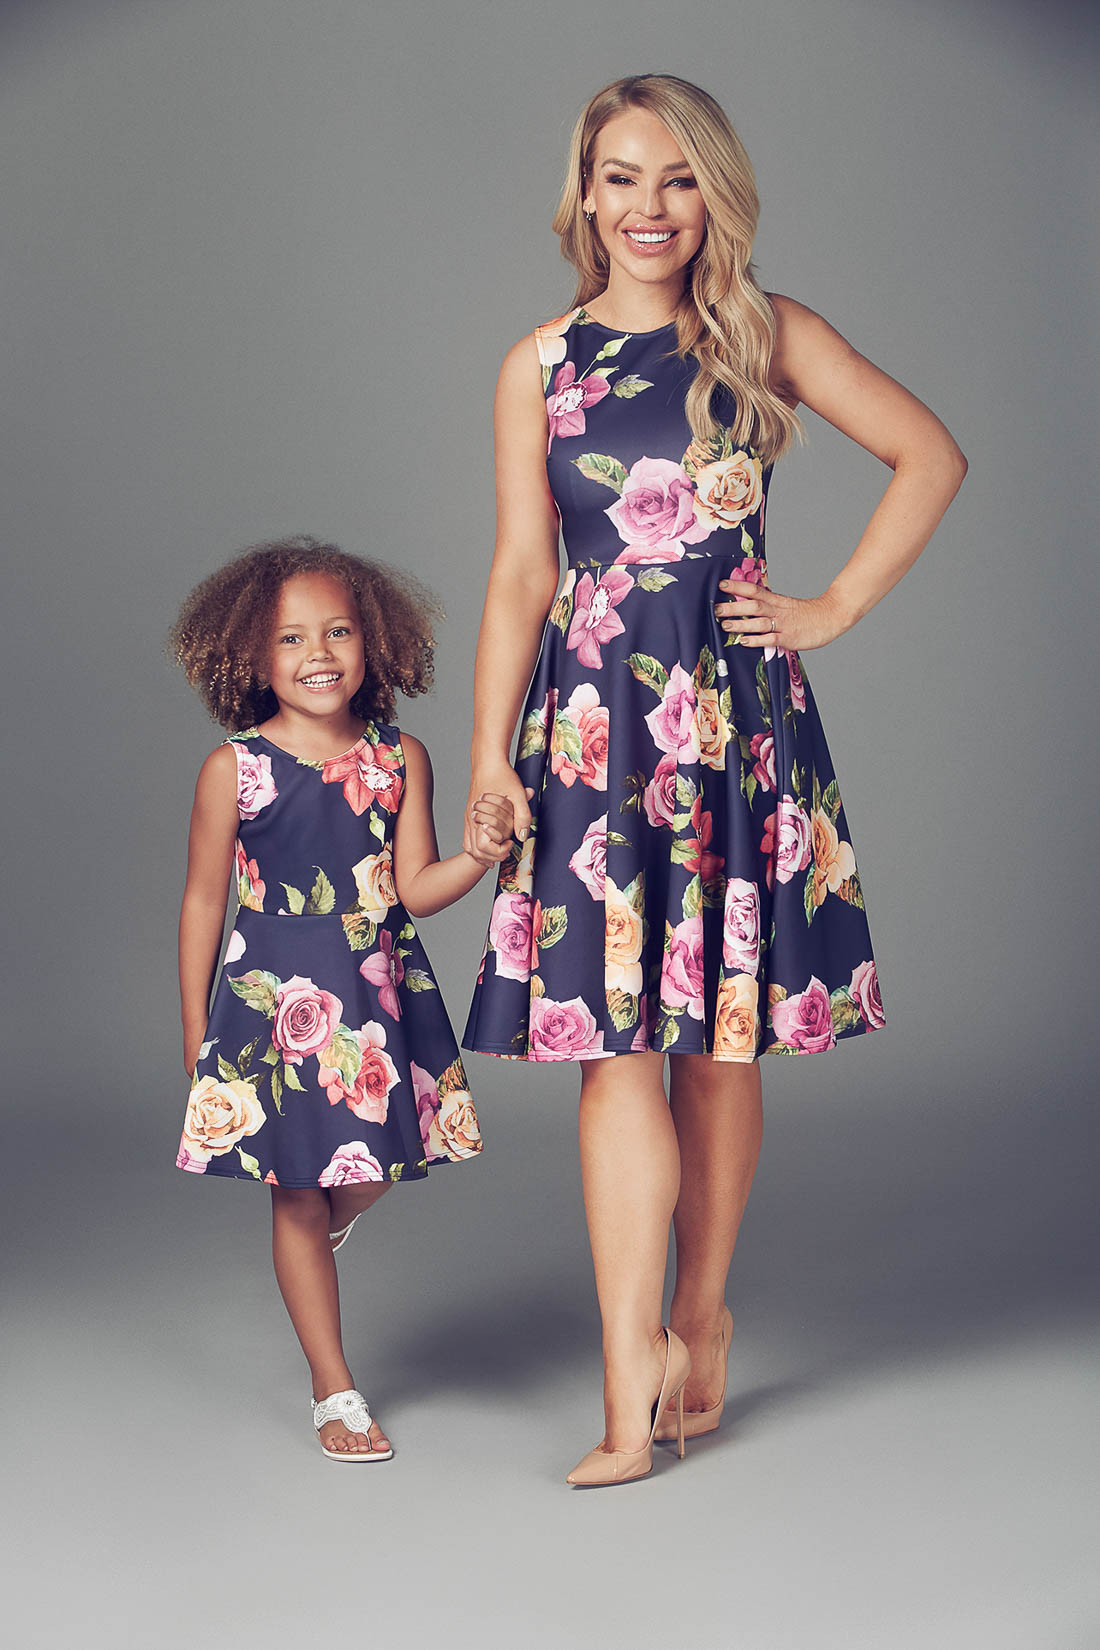 bfa53f7068dad The Katie Piper Mummy & Me Collection For Want That Trend | Giveaway